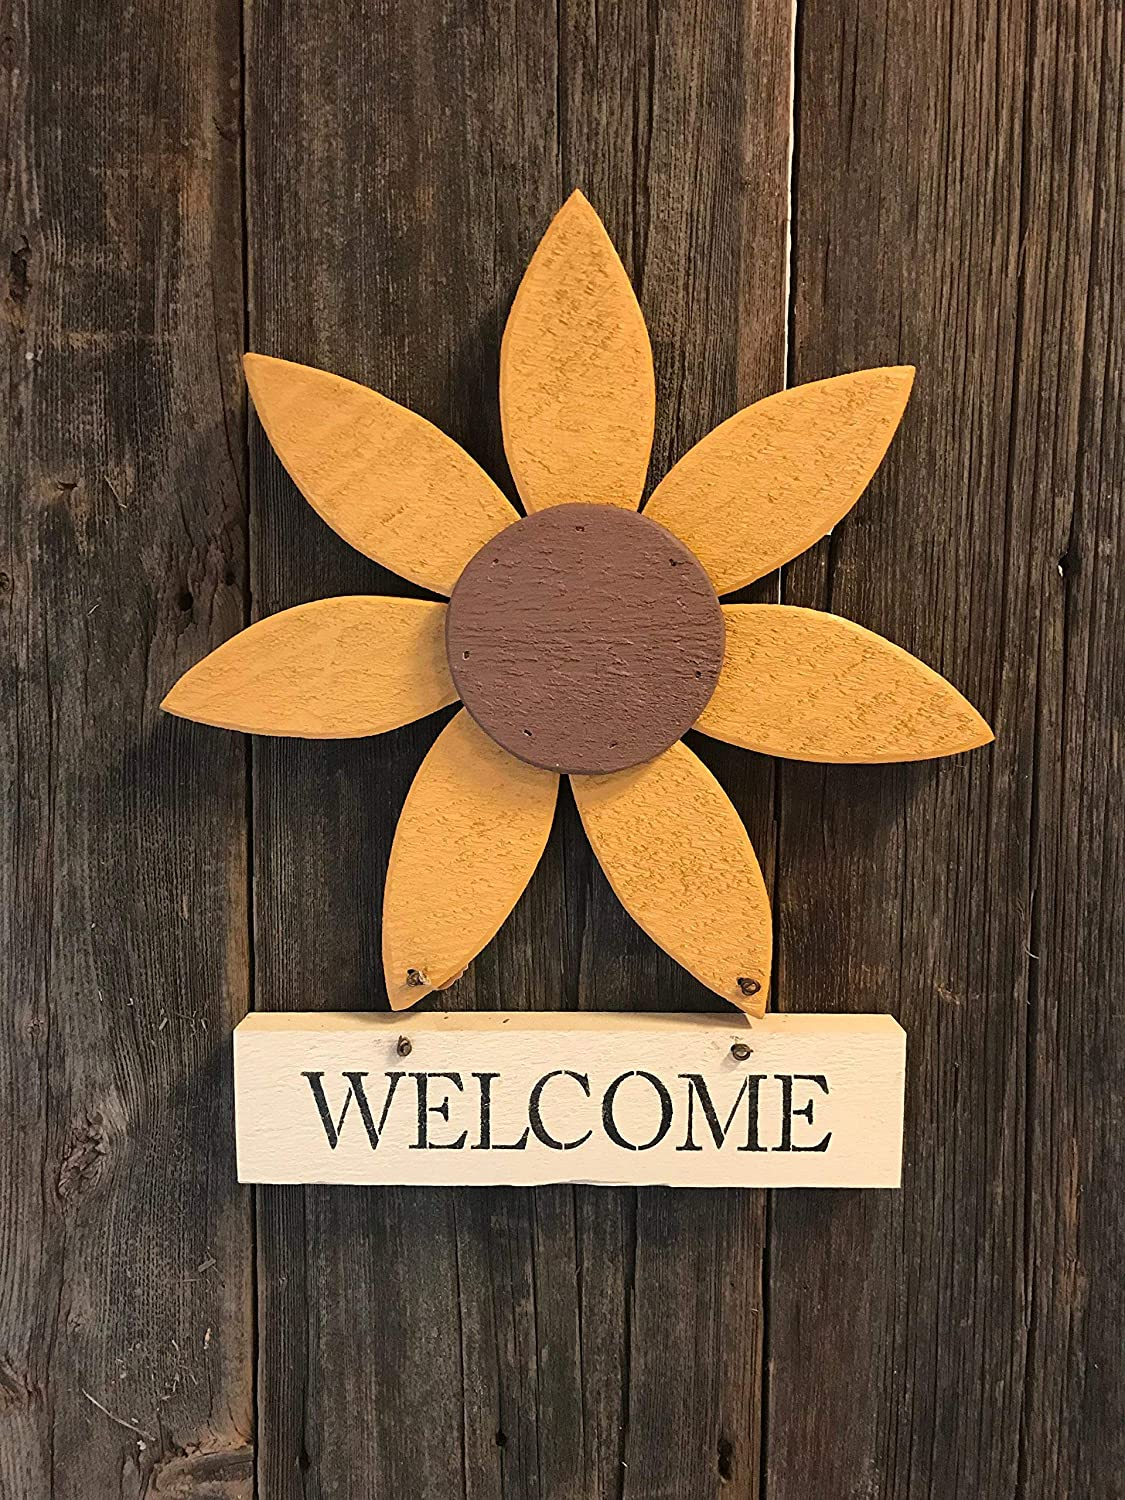 Wood Flower with Welcome Sign Patio Furniture Artwork Garden Shed Barn Door Lawn Decor Outdoor Painted Wood Ornament Spring Summer Fall